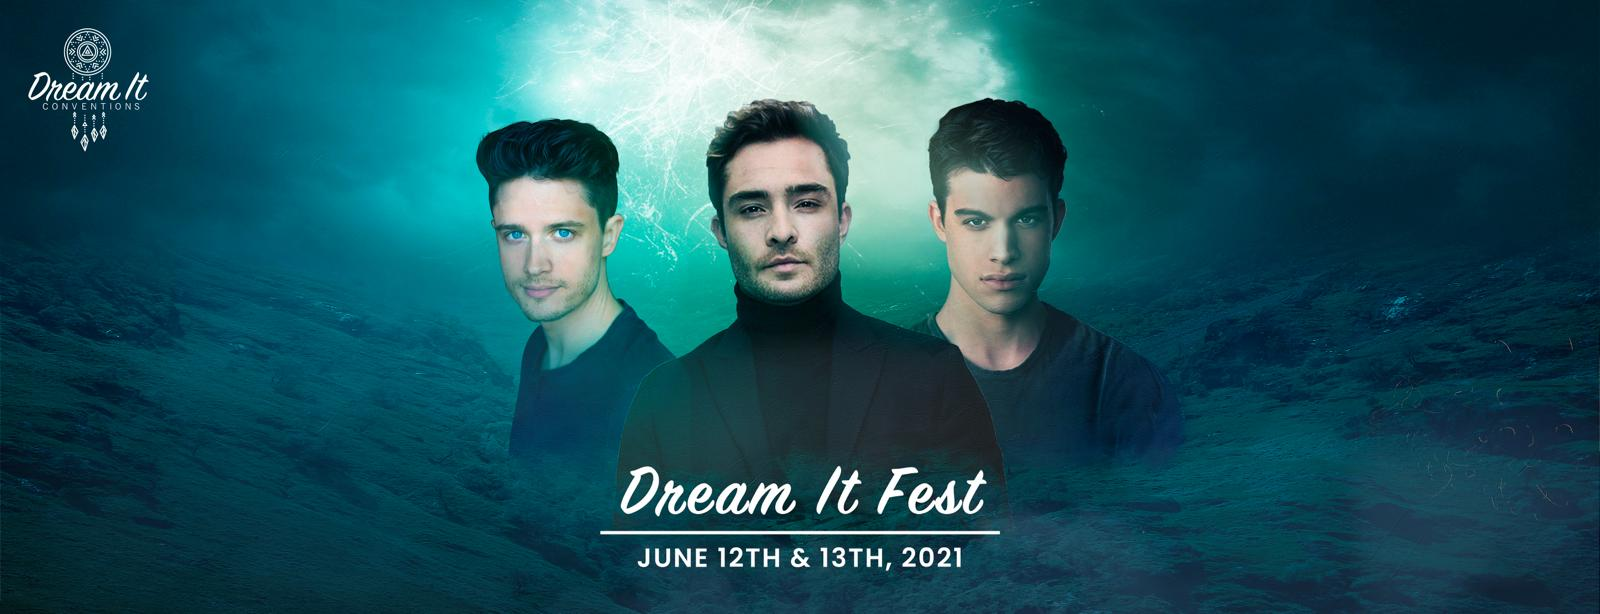 Dream It Fest Paris